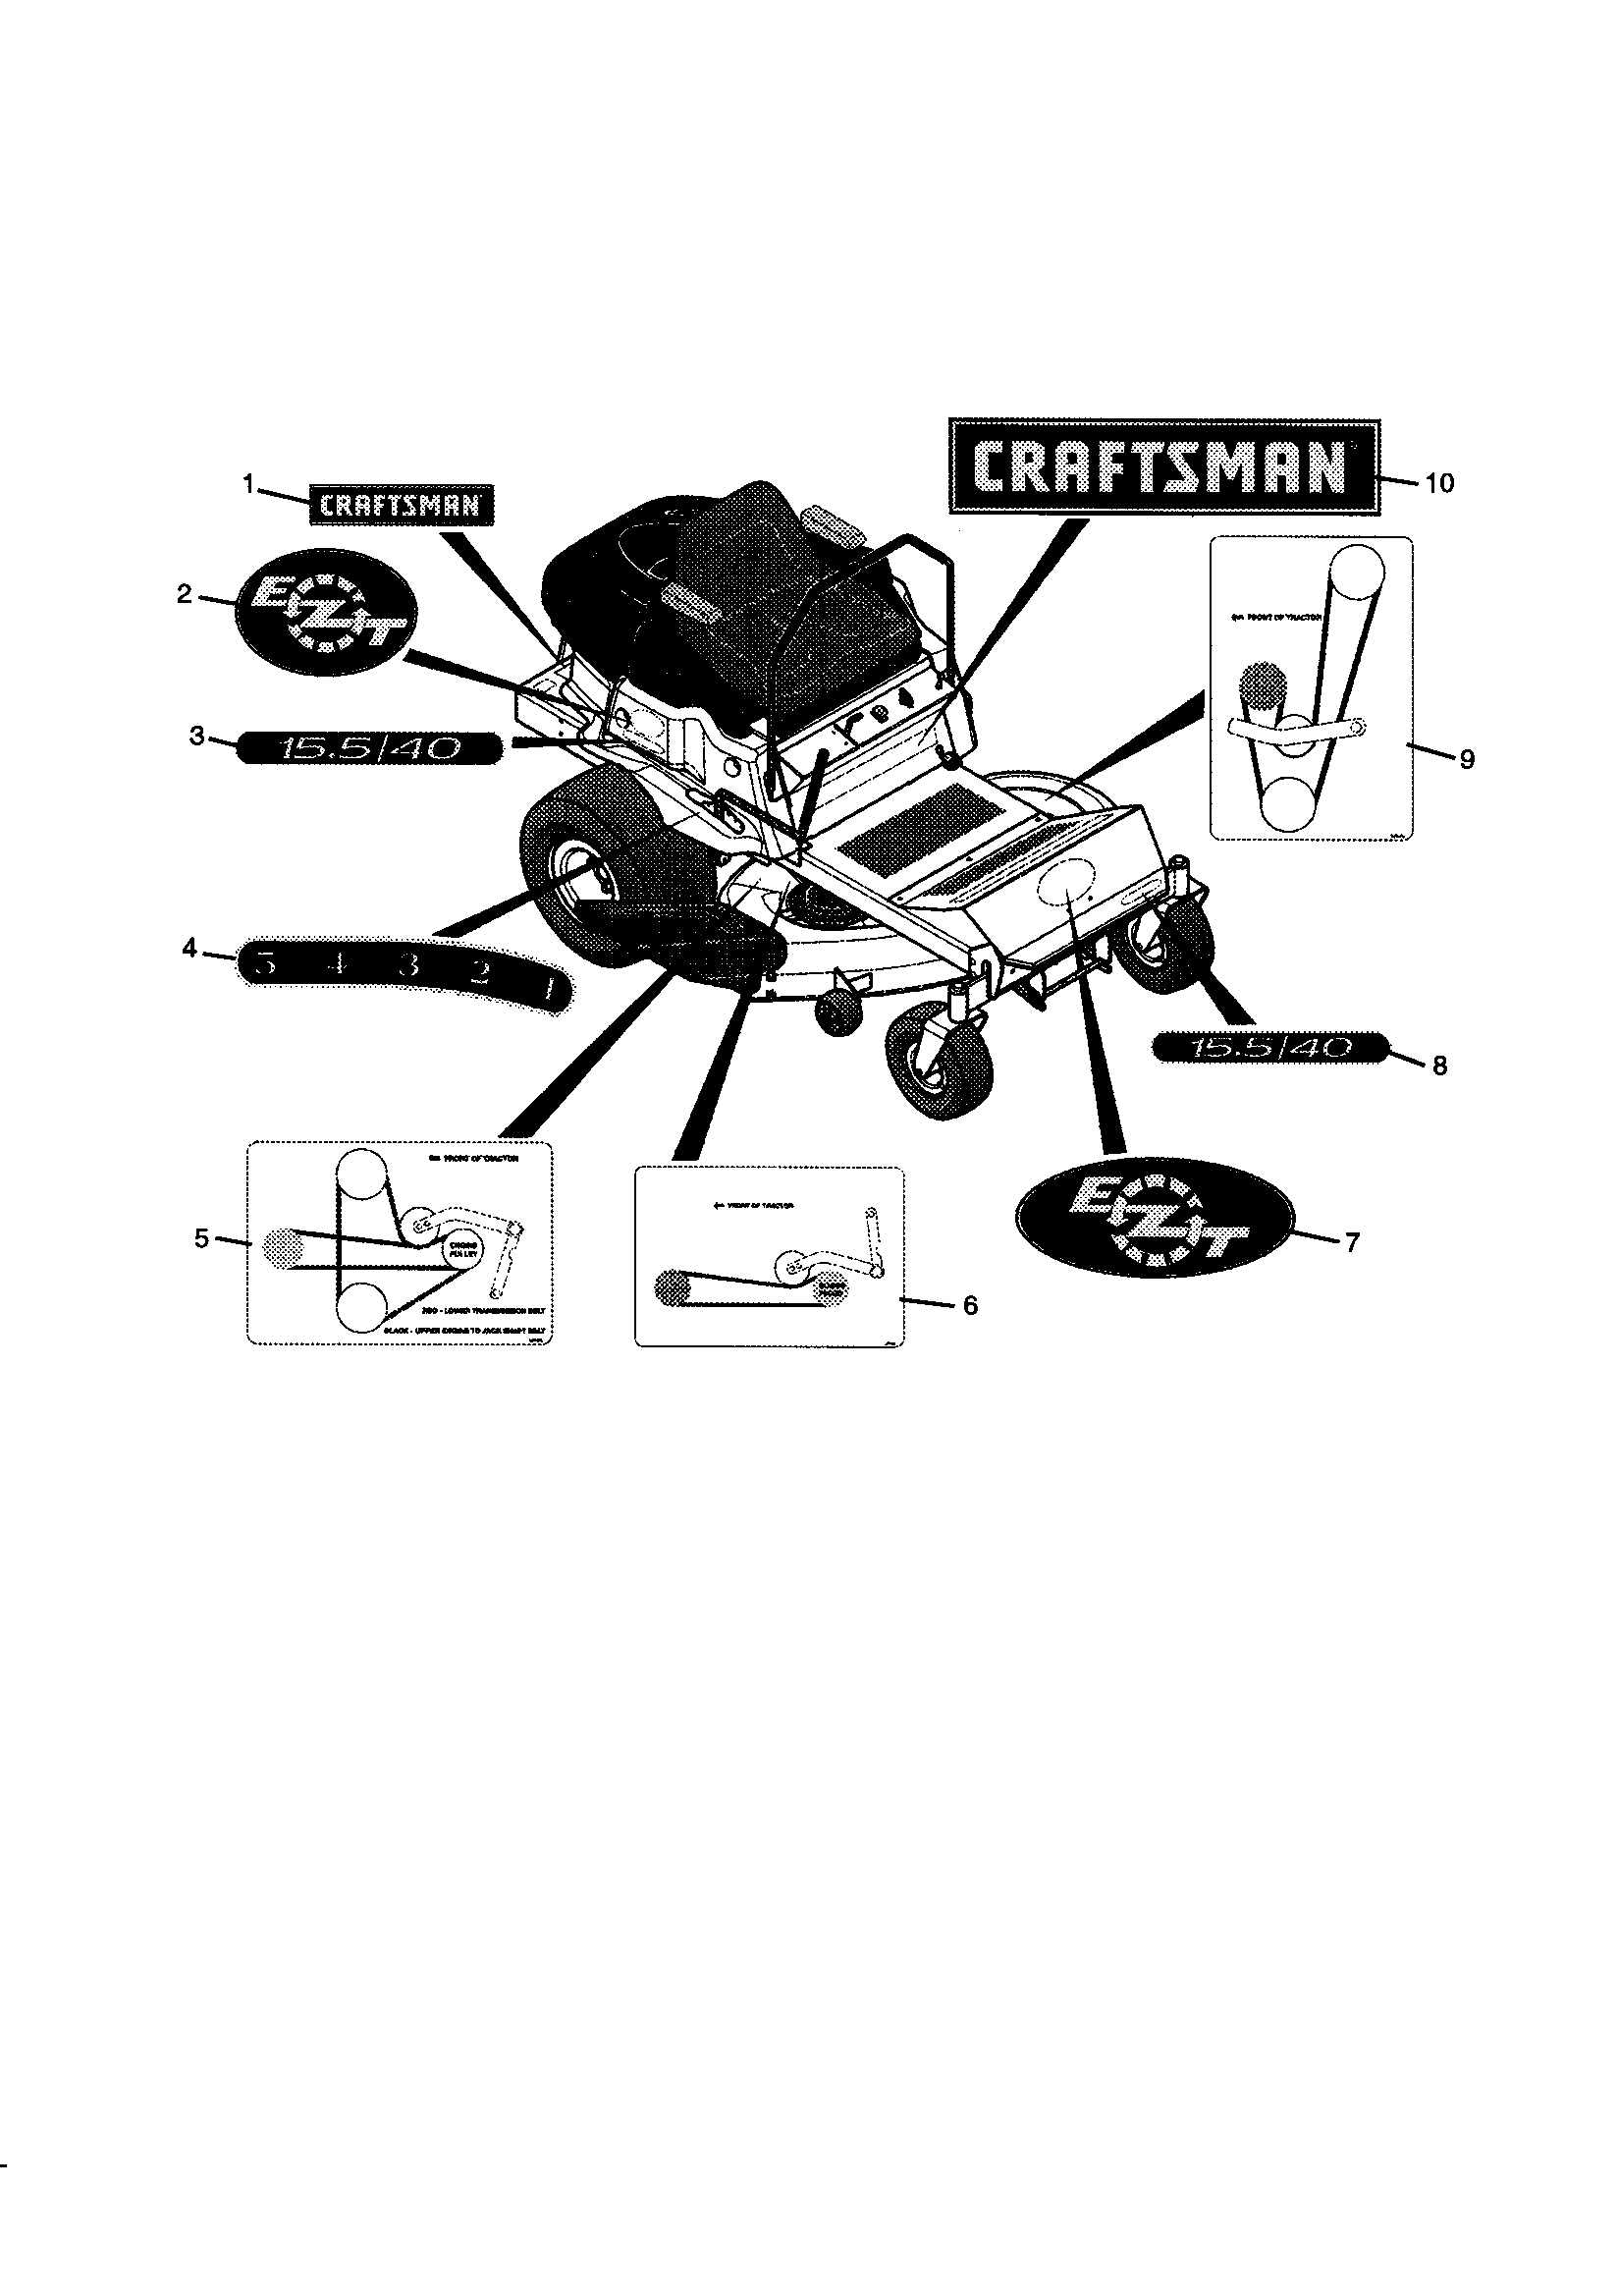 Craftsman model 102273920 lawn, tractor genuine parts